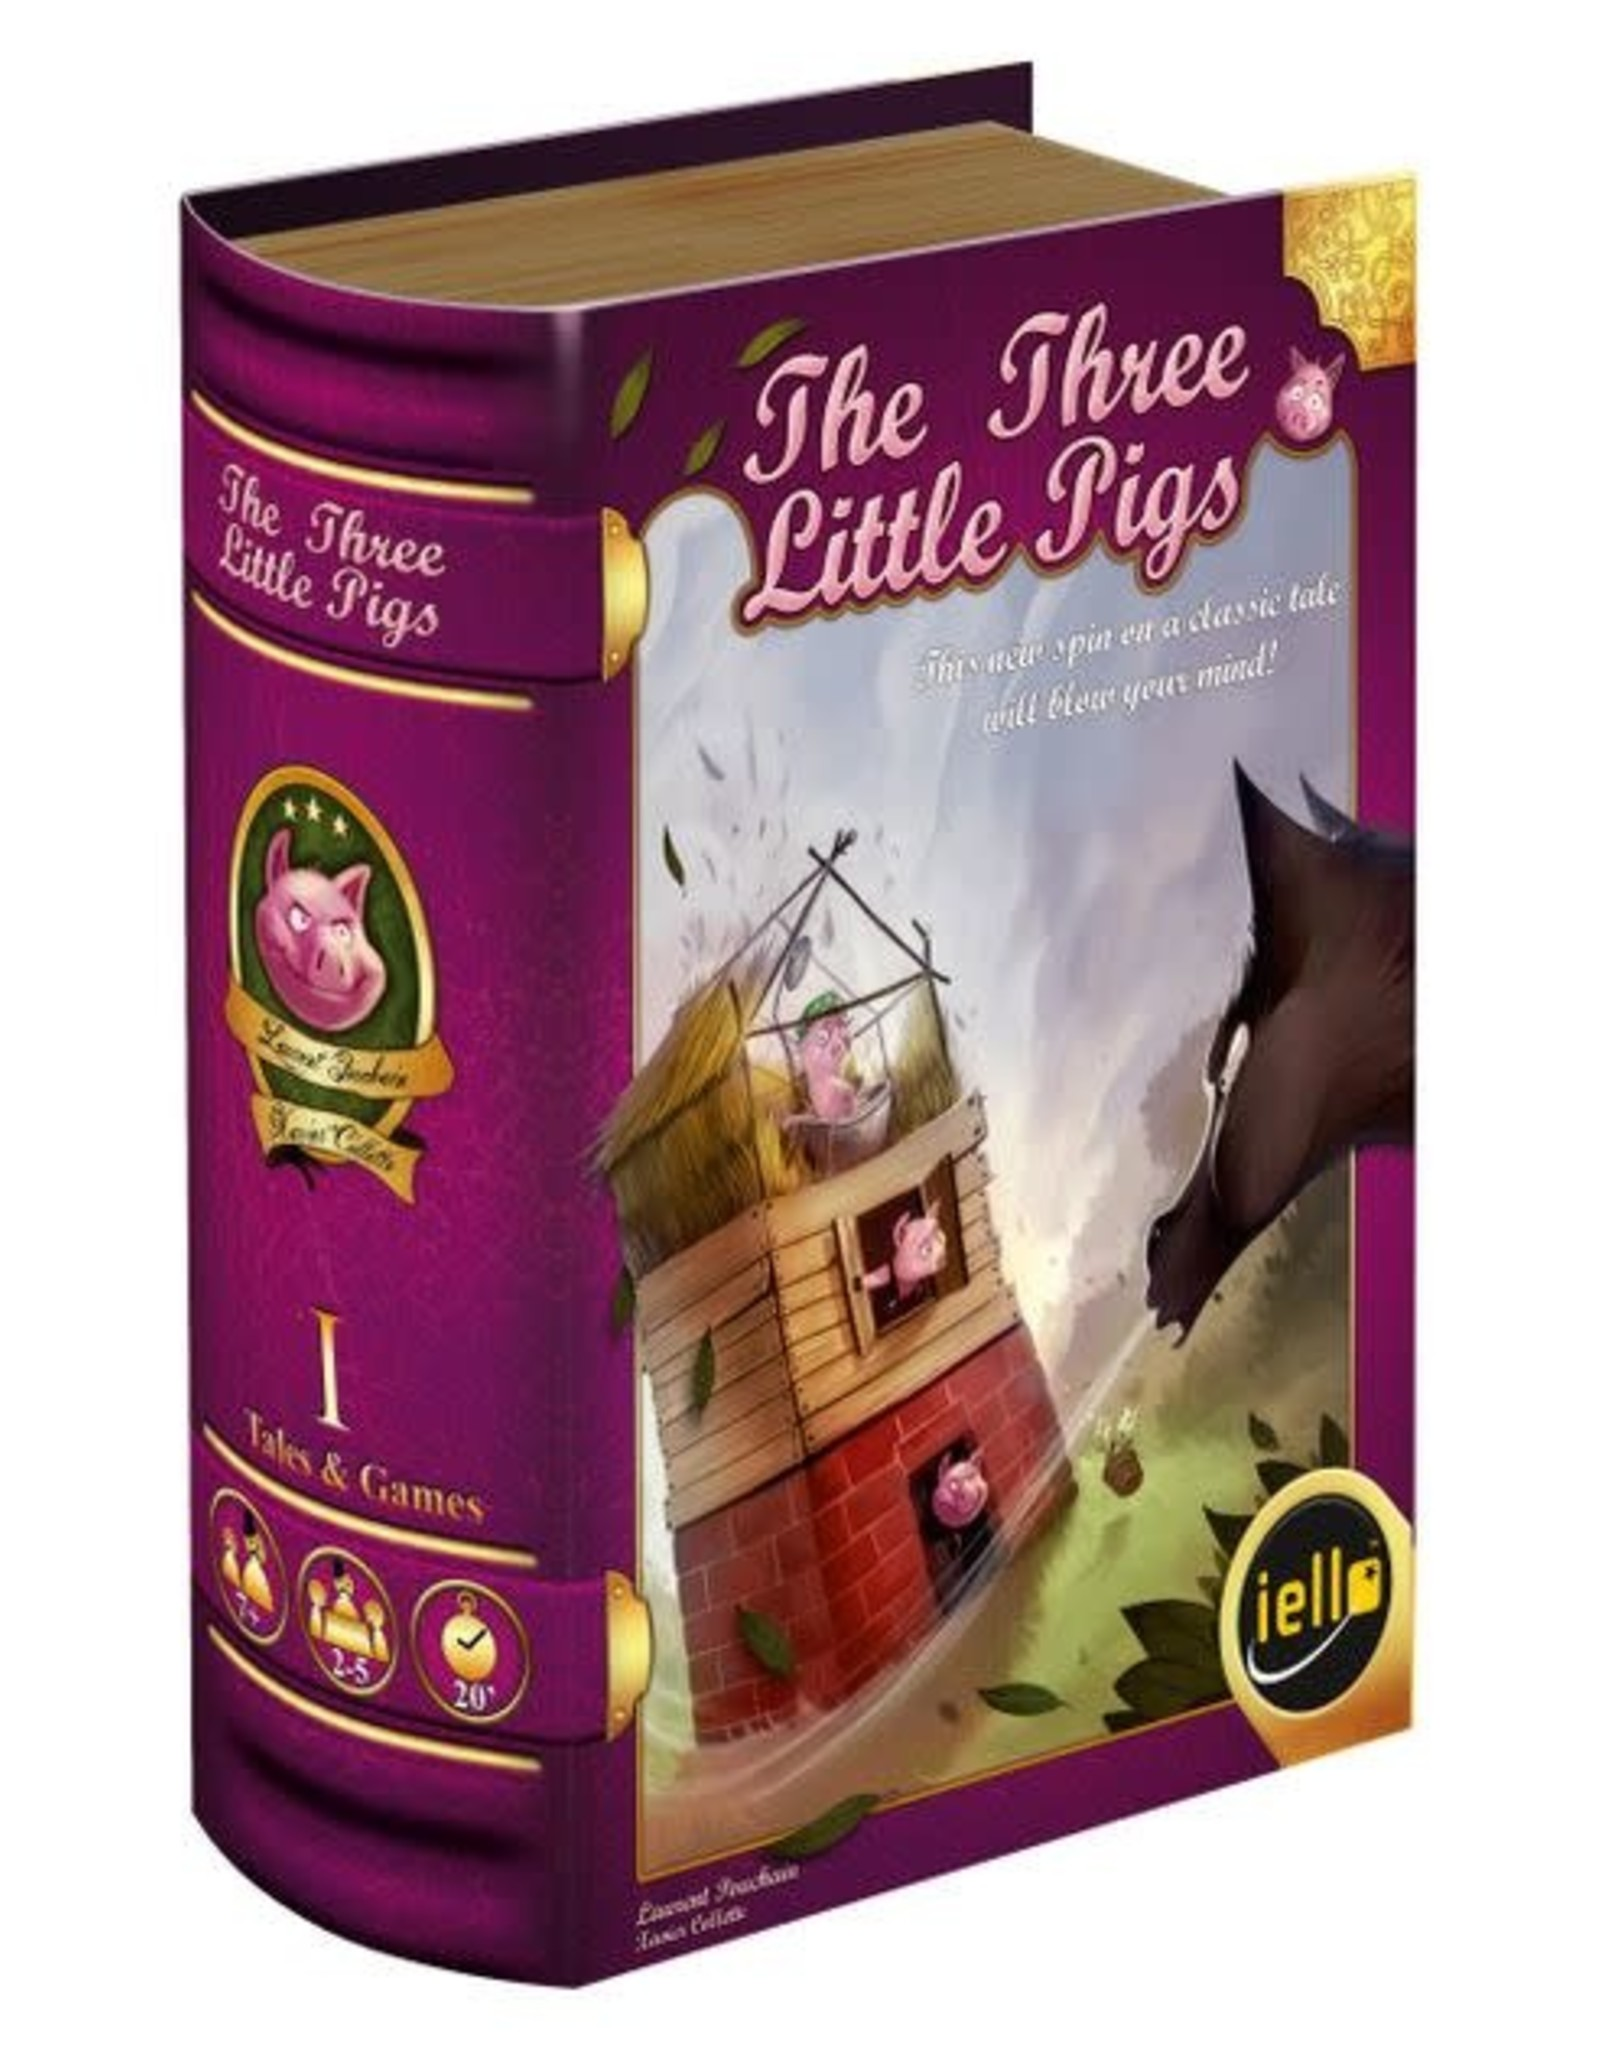 Tales & Games #1: The Three Little Pigs